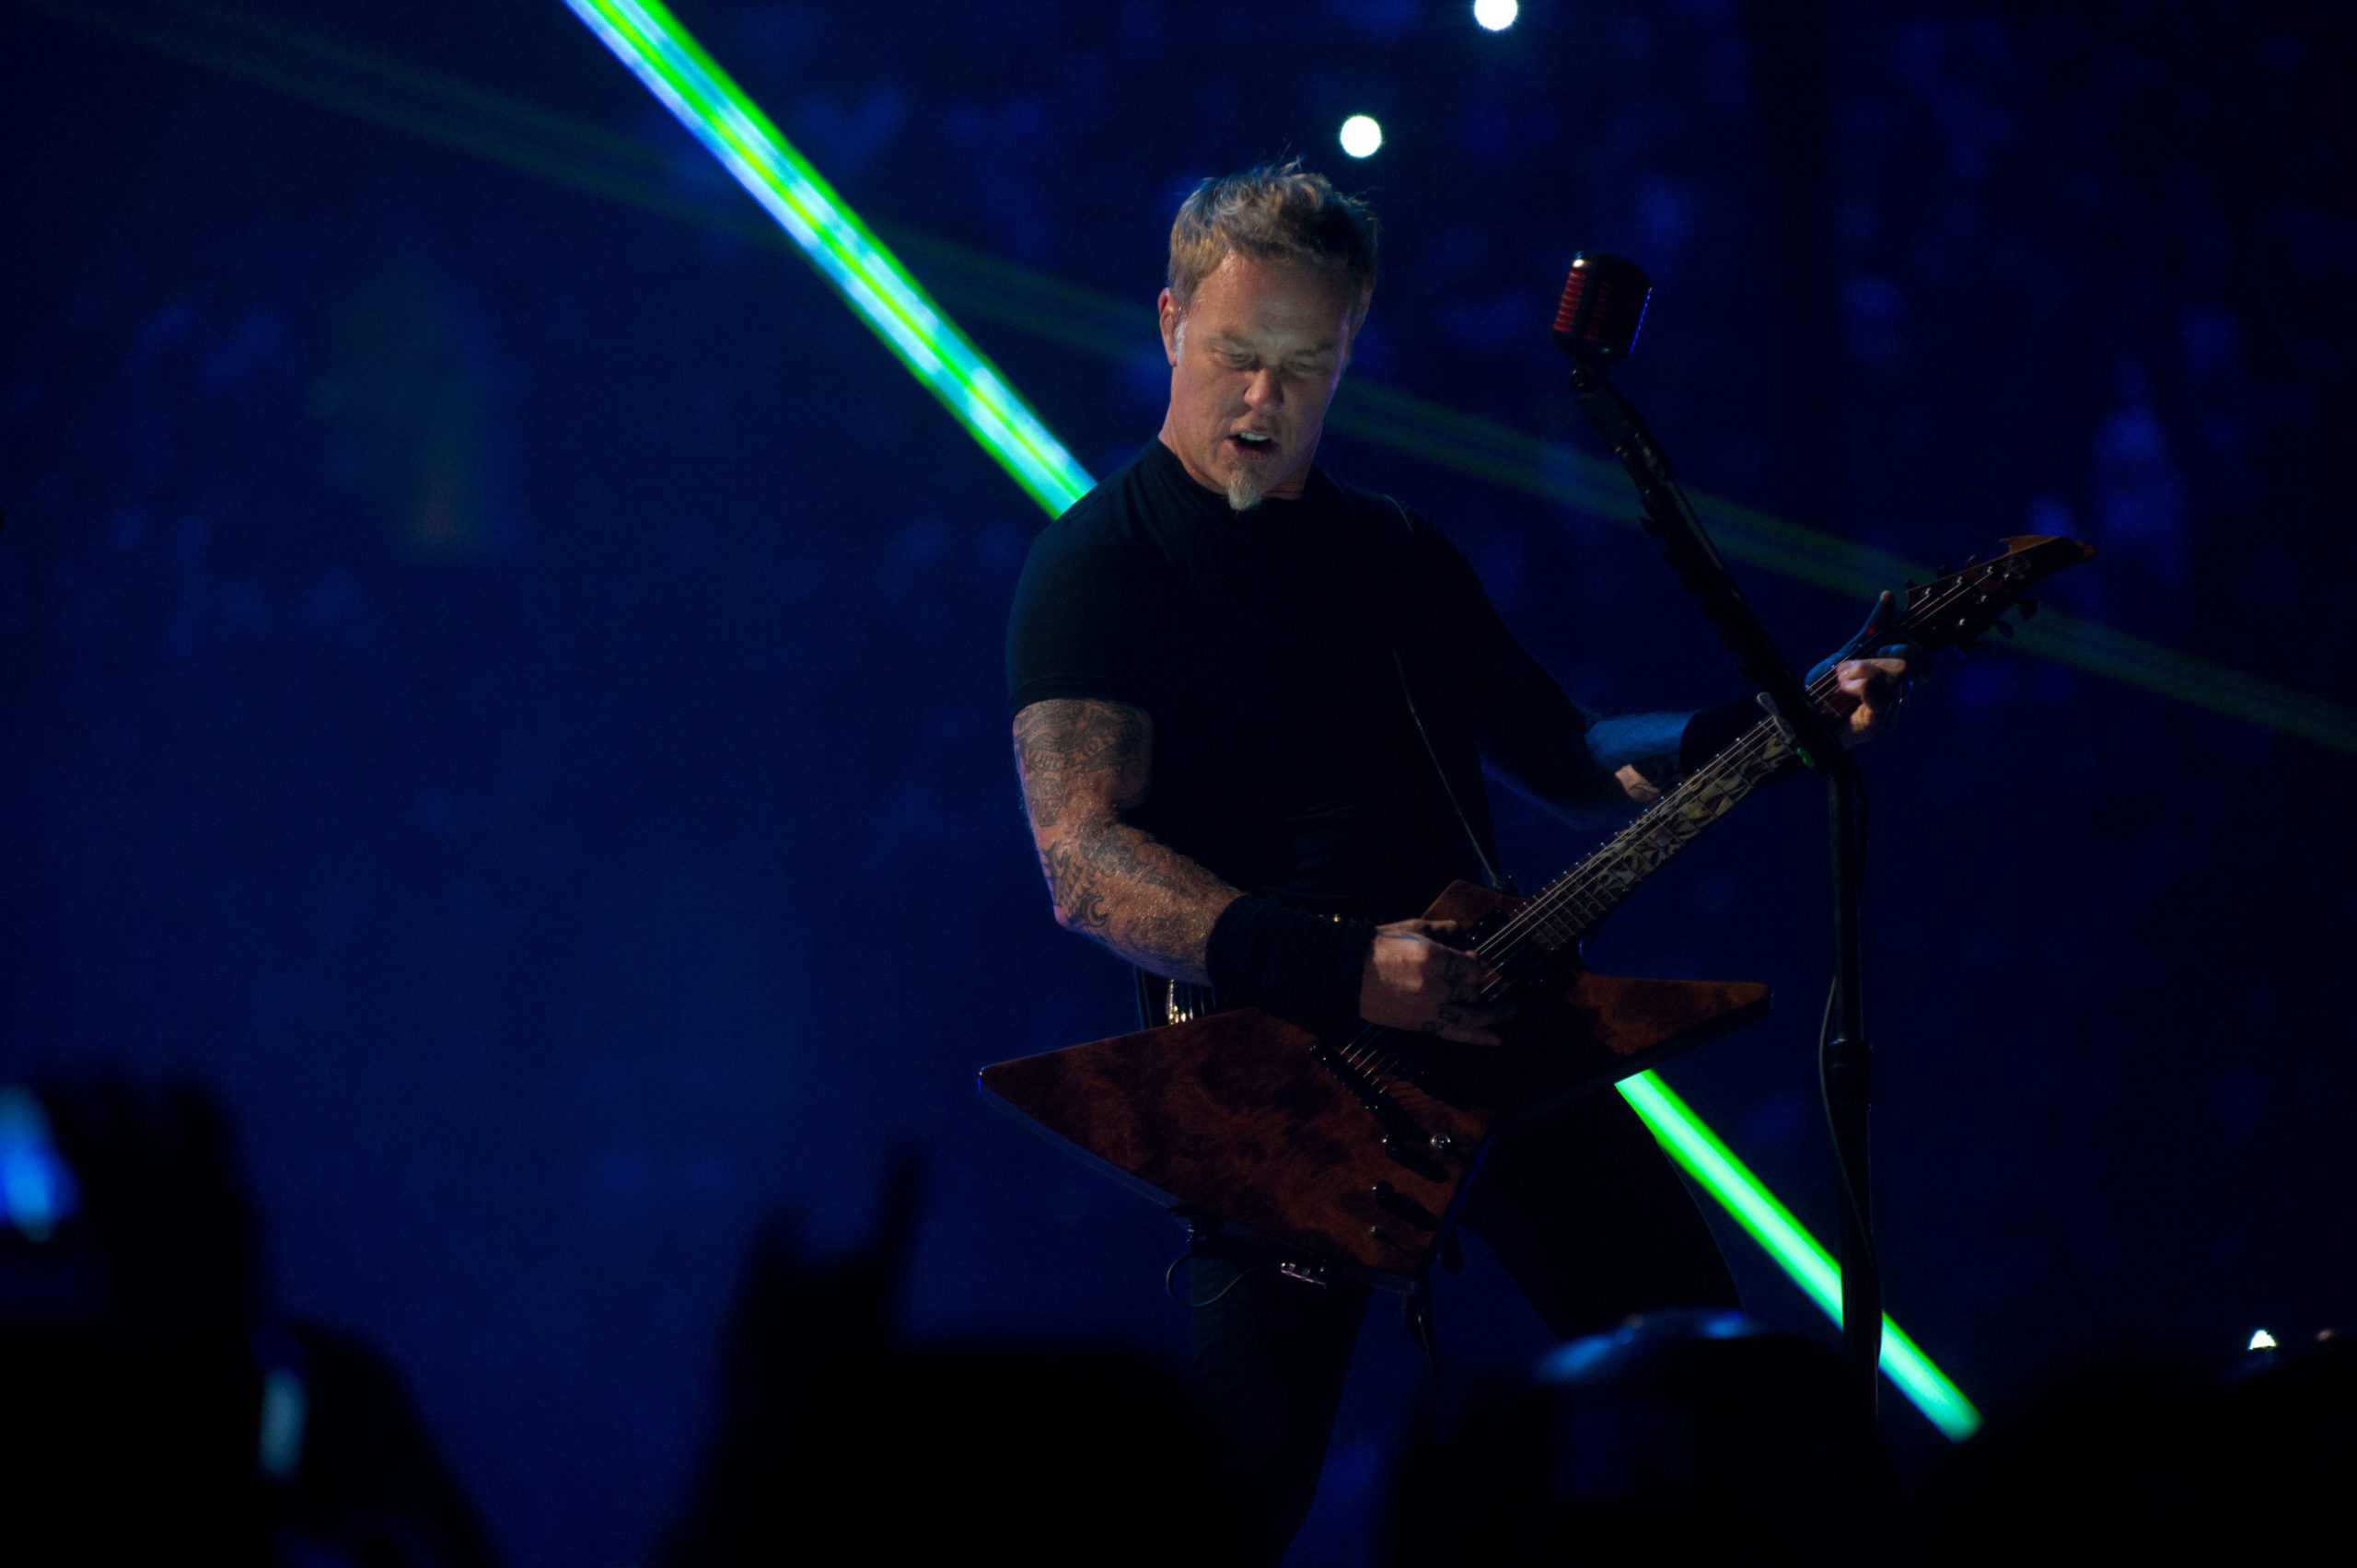 metallica-_photo_credit-_photograph_by_ross_halfin____metallica_through_the_never__courtesy_of_picturehouse-3-scaled-6112531-4782468-jpg